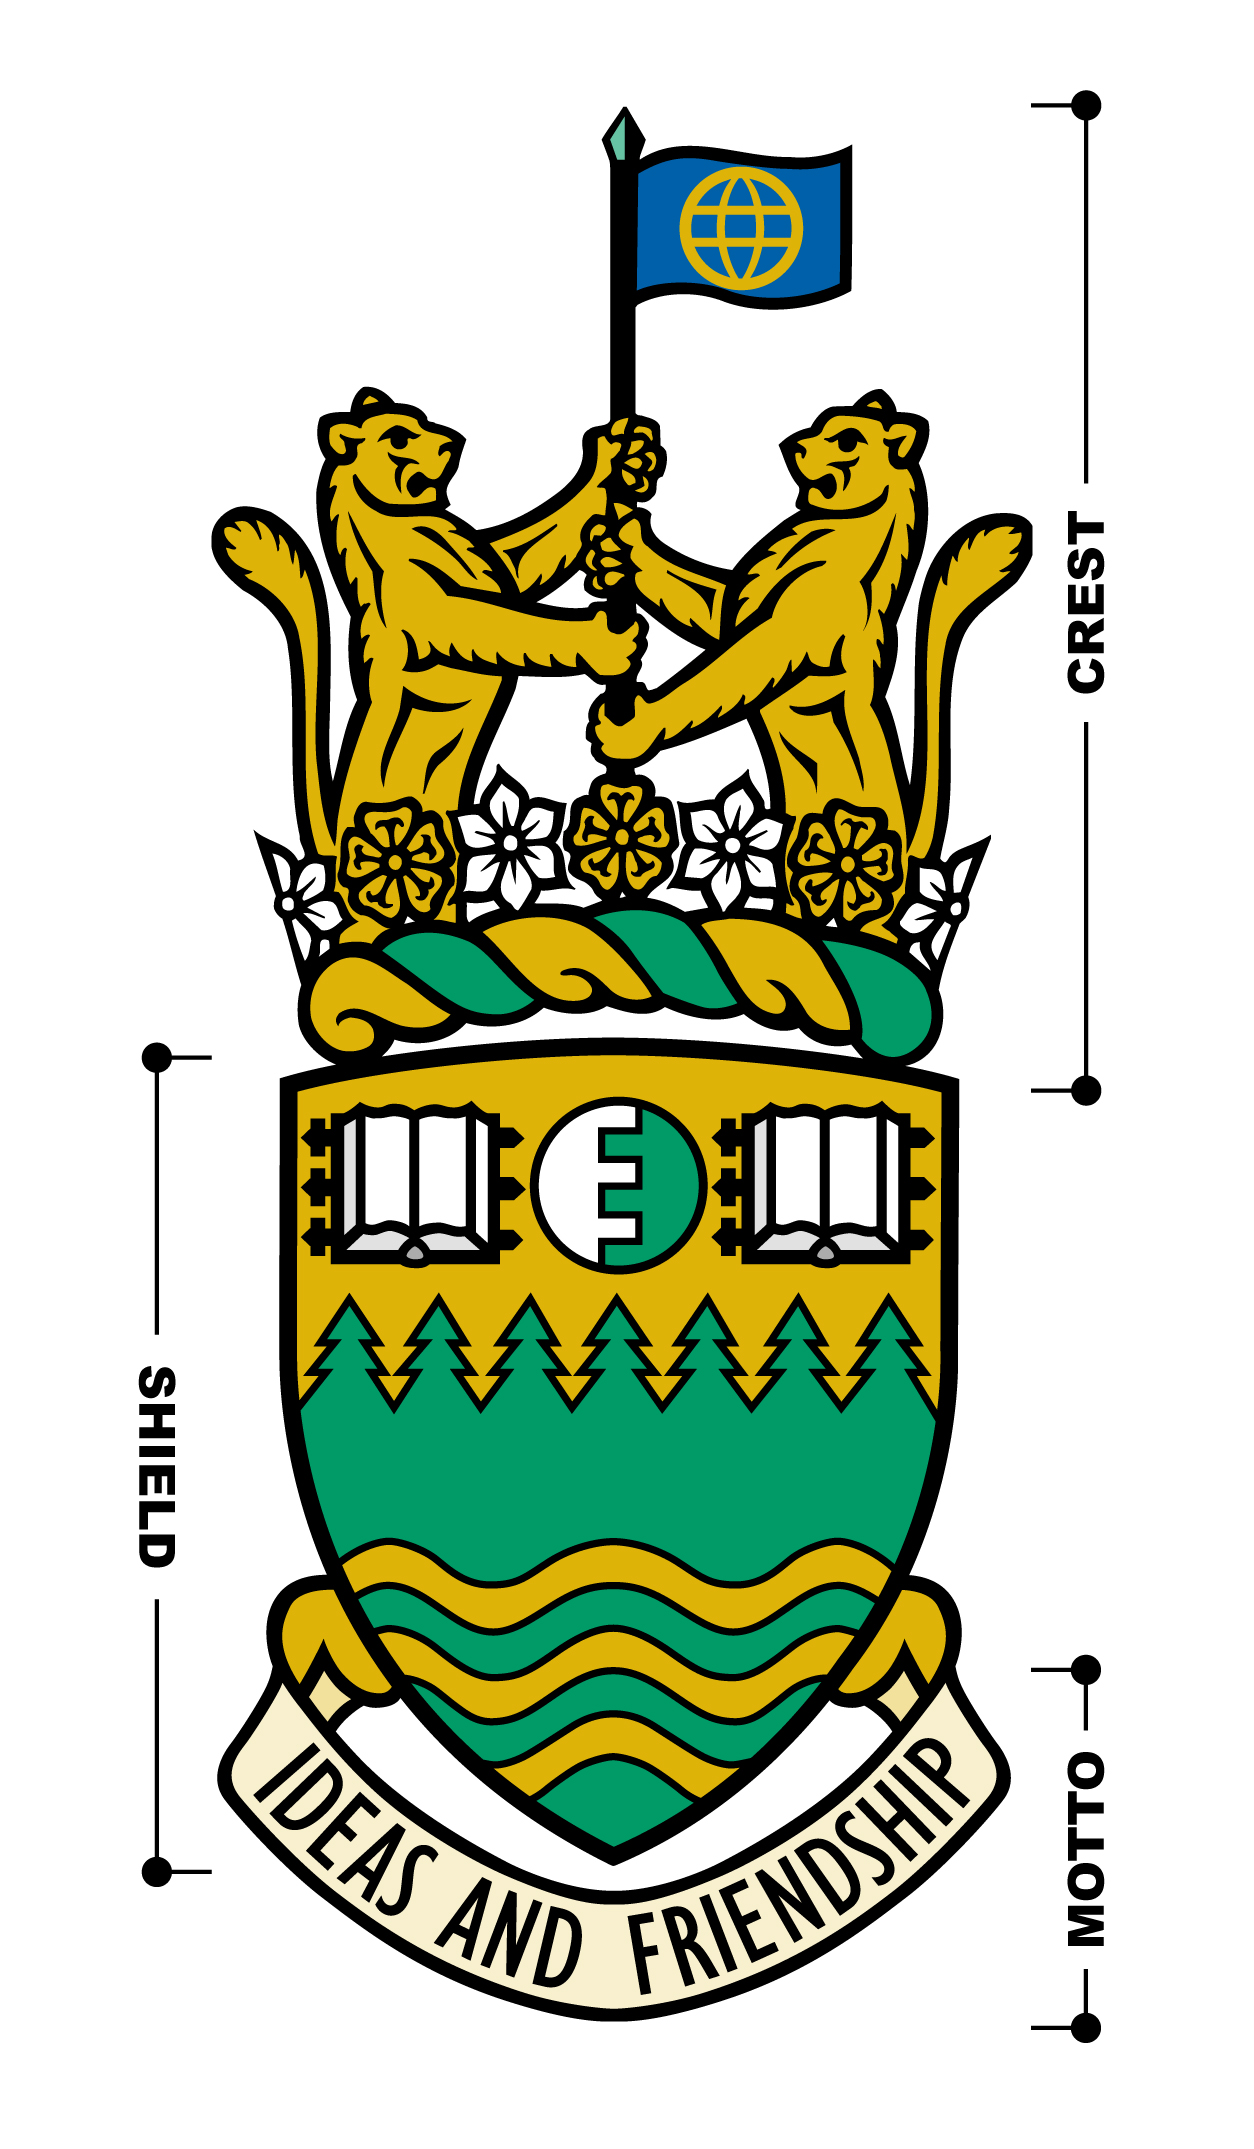 Green College Coat of Arms